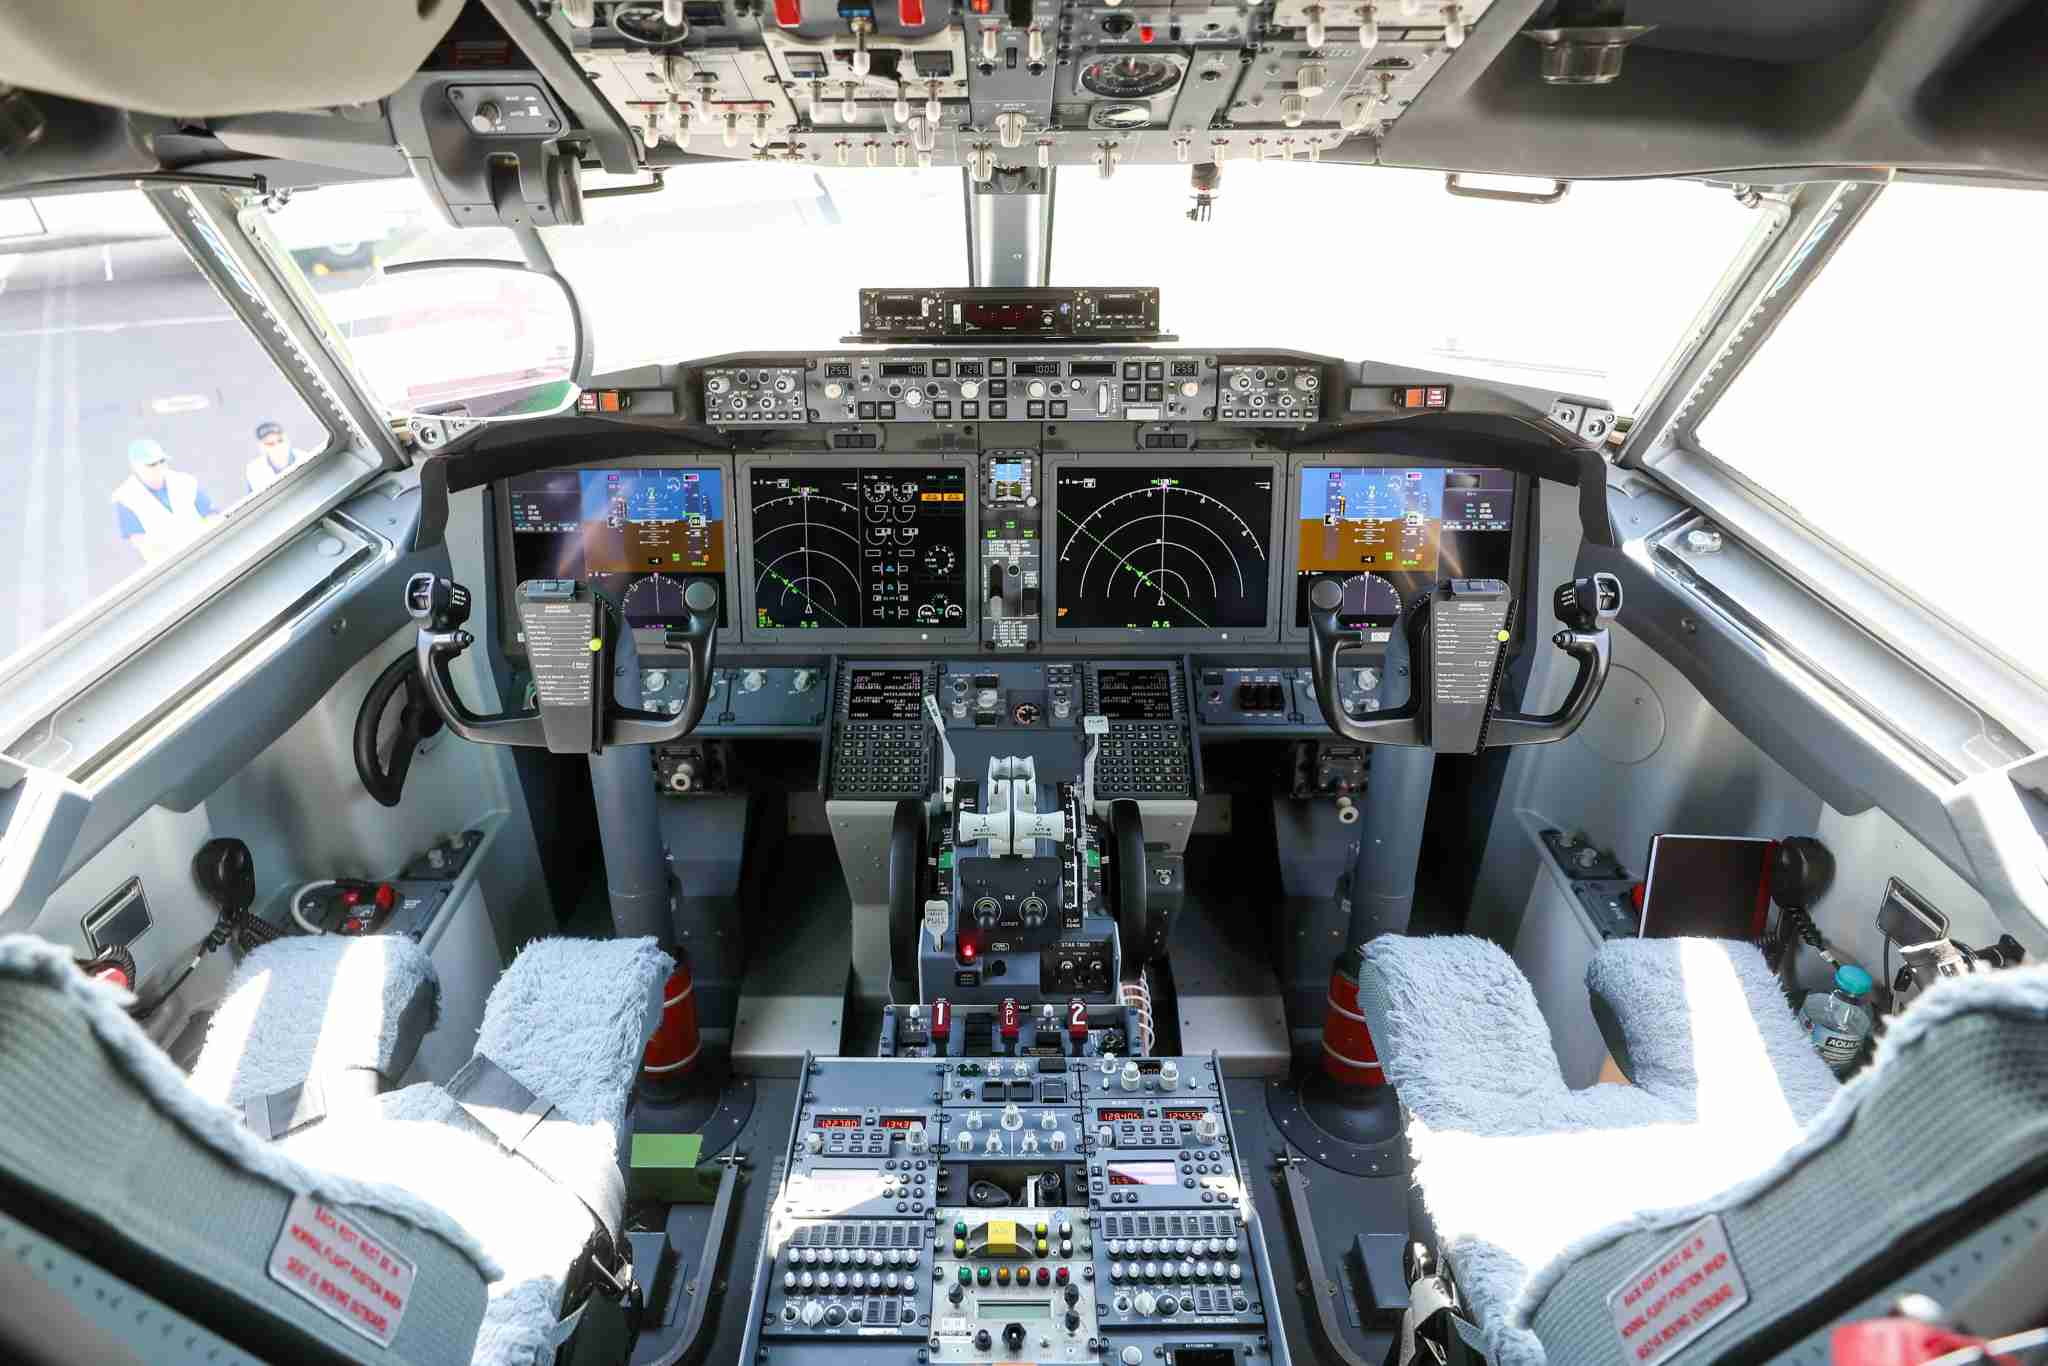 The flight deck of a Boeing 737 MAX 7 as seen in 2018 (Image by Simon Dawson/Bloomberg via Getty Images)